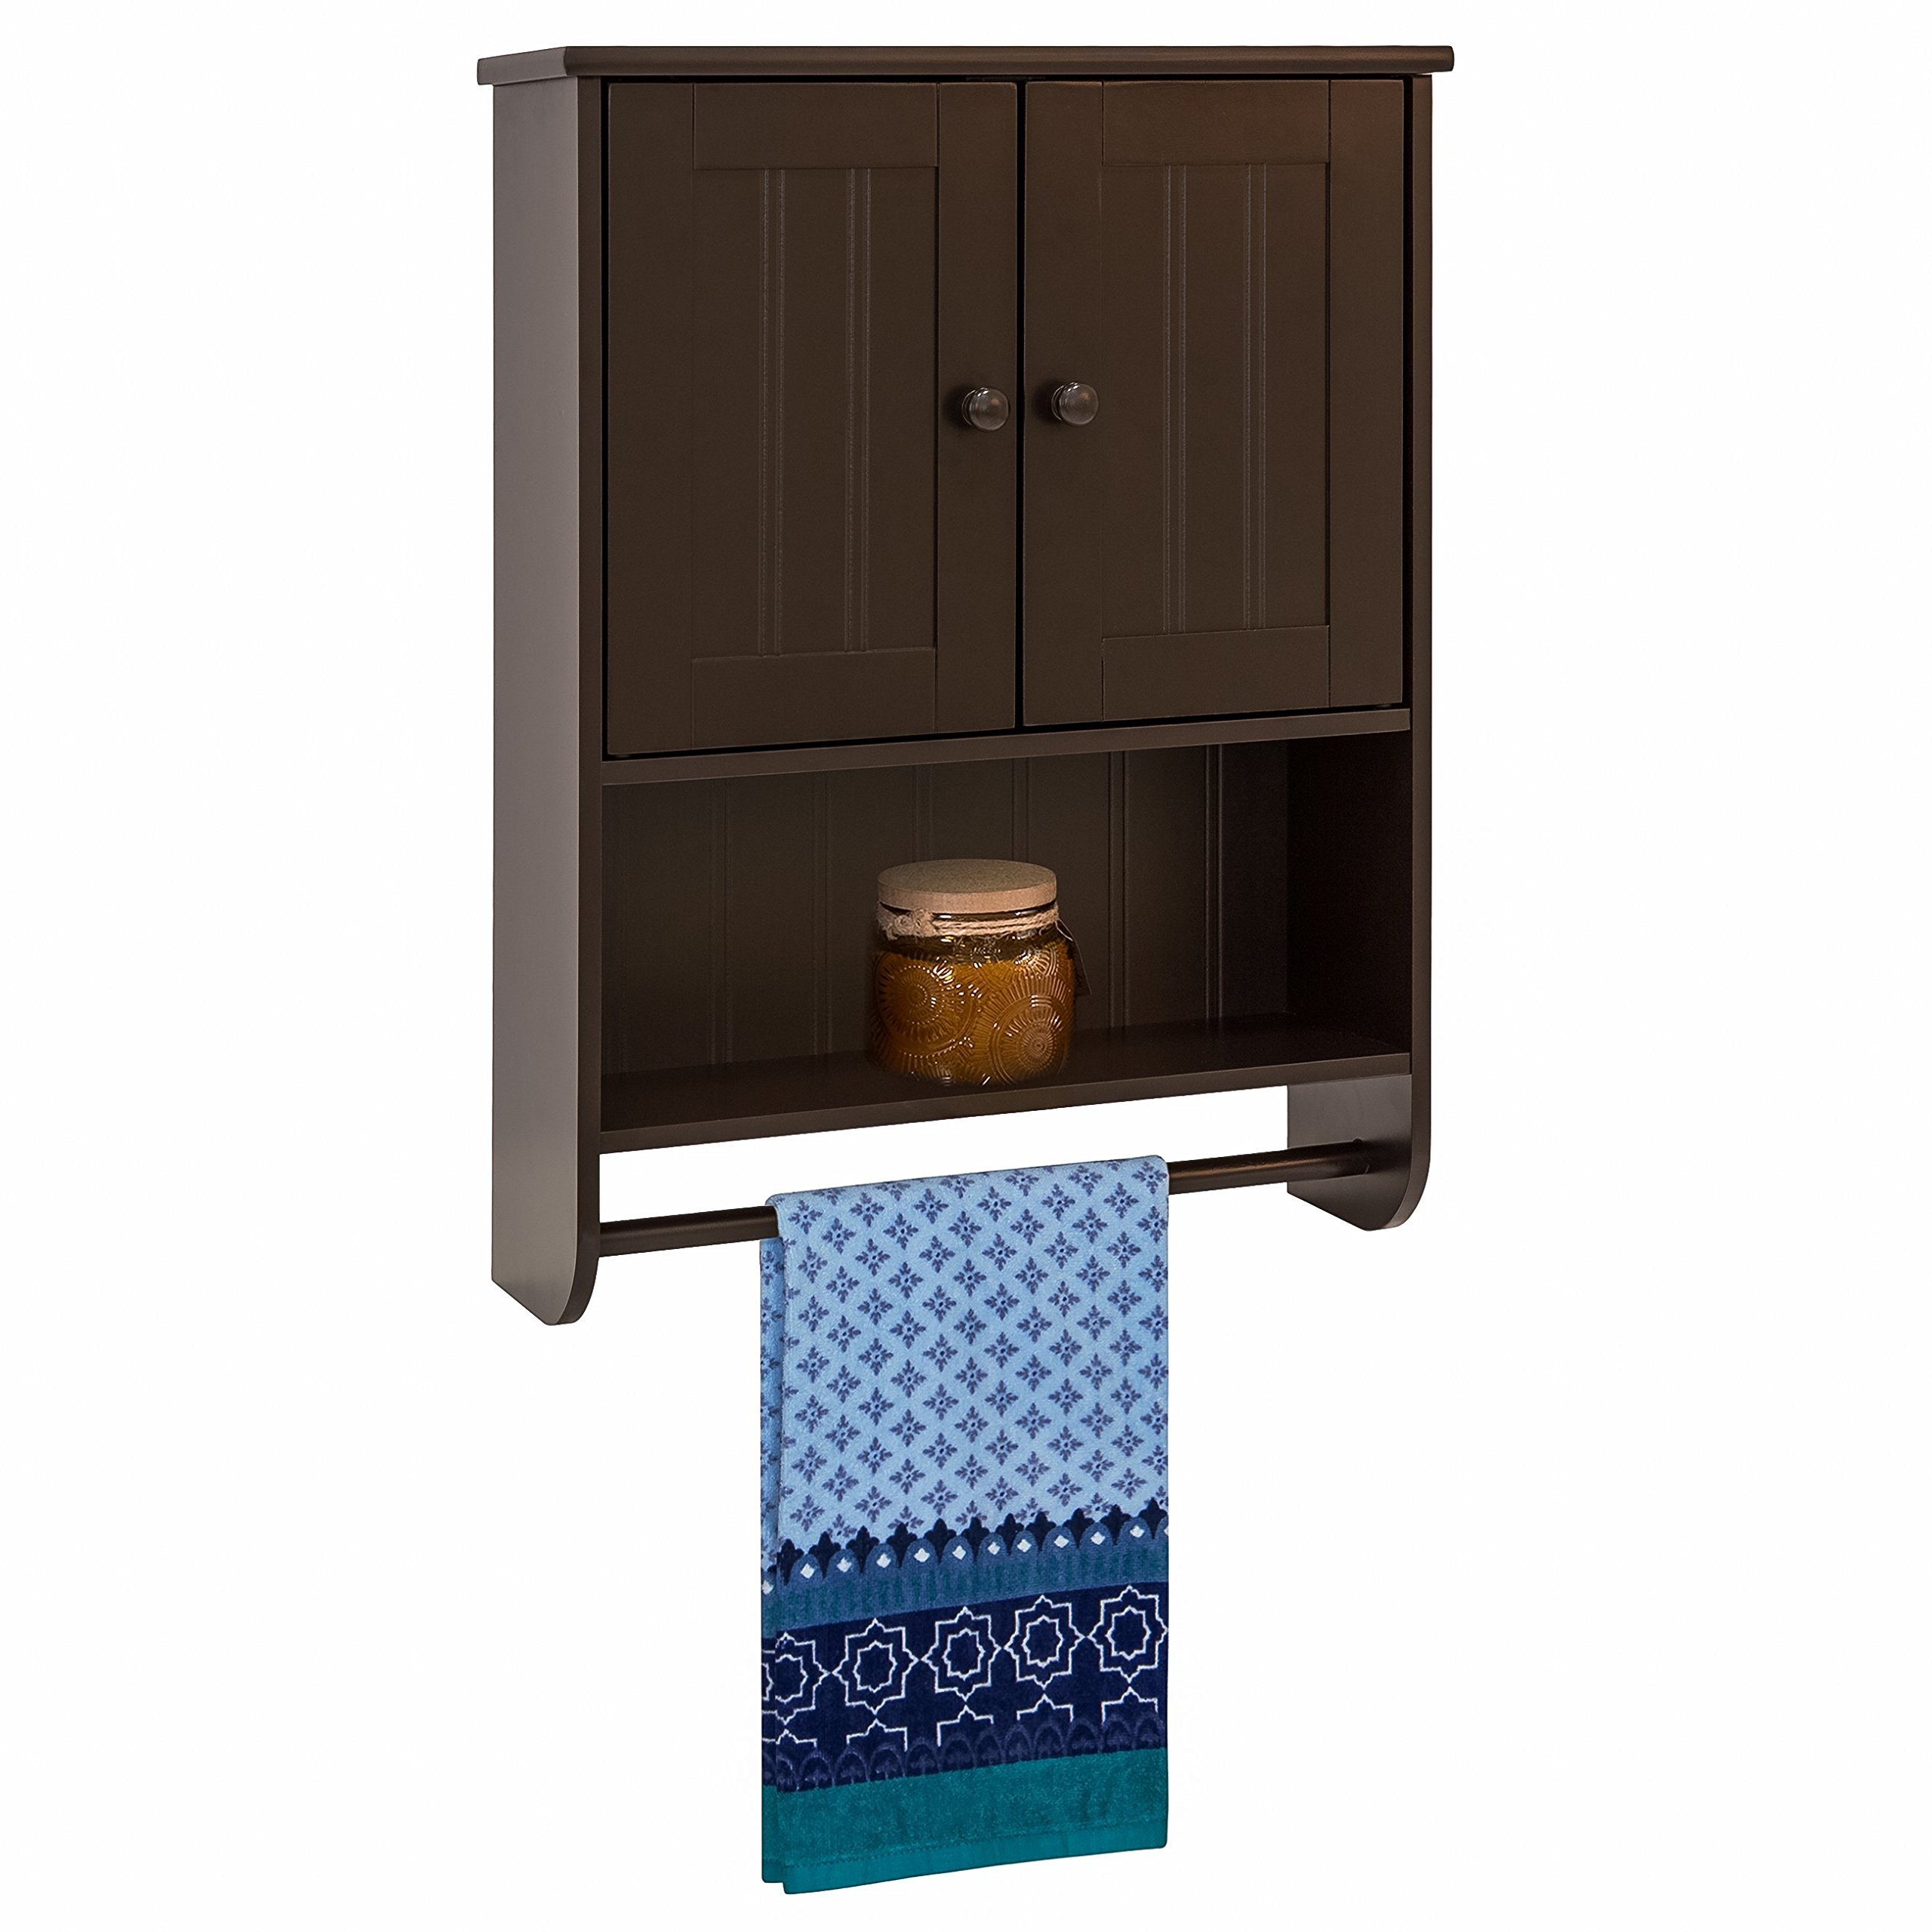 Best Choice Products Modern Contemporary Wood Bathroom Storage Organization Wall Cabinet w/Open Cubby, Adjustable Shelf, Double Doors, Towel Bar, Wainscot Paneling - Espresso Brown